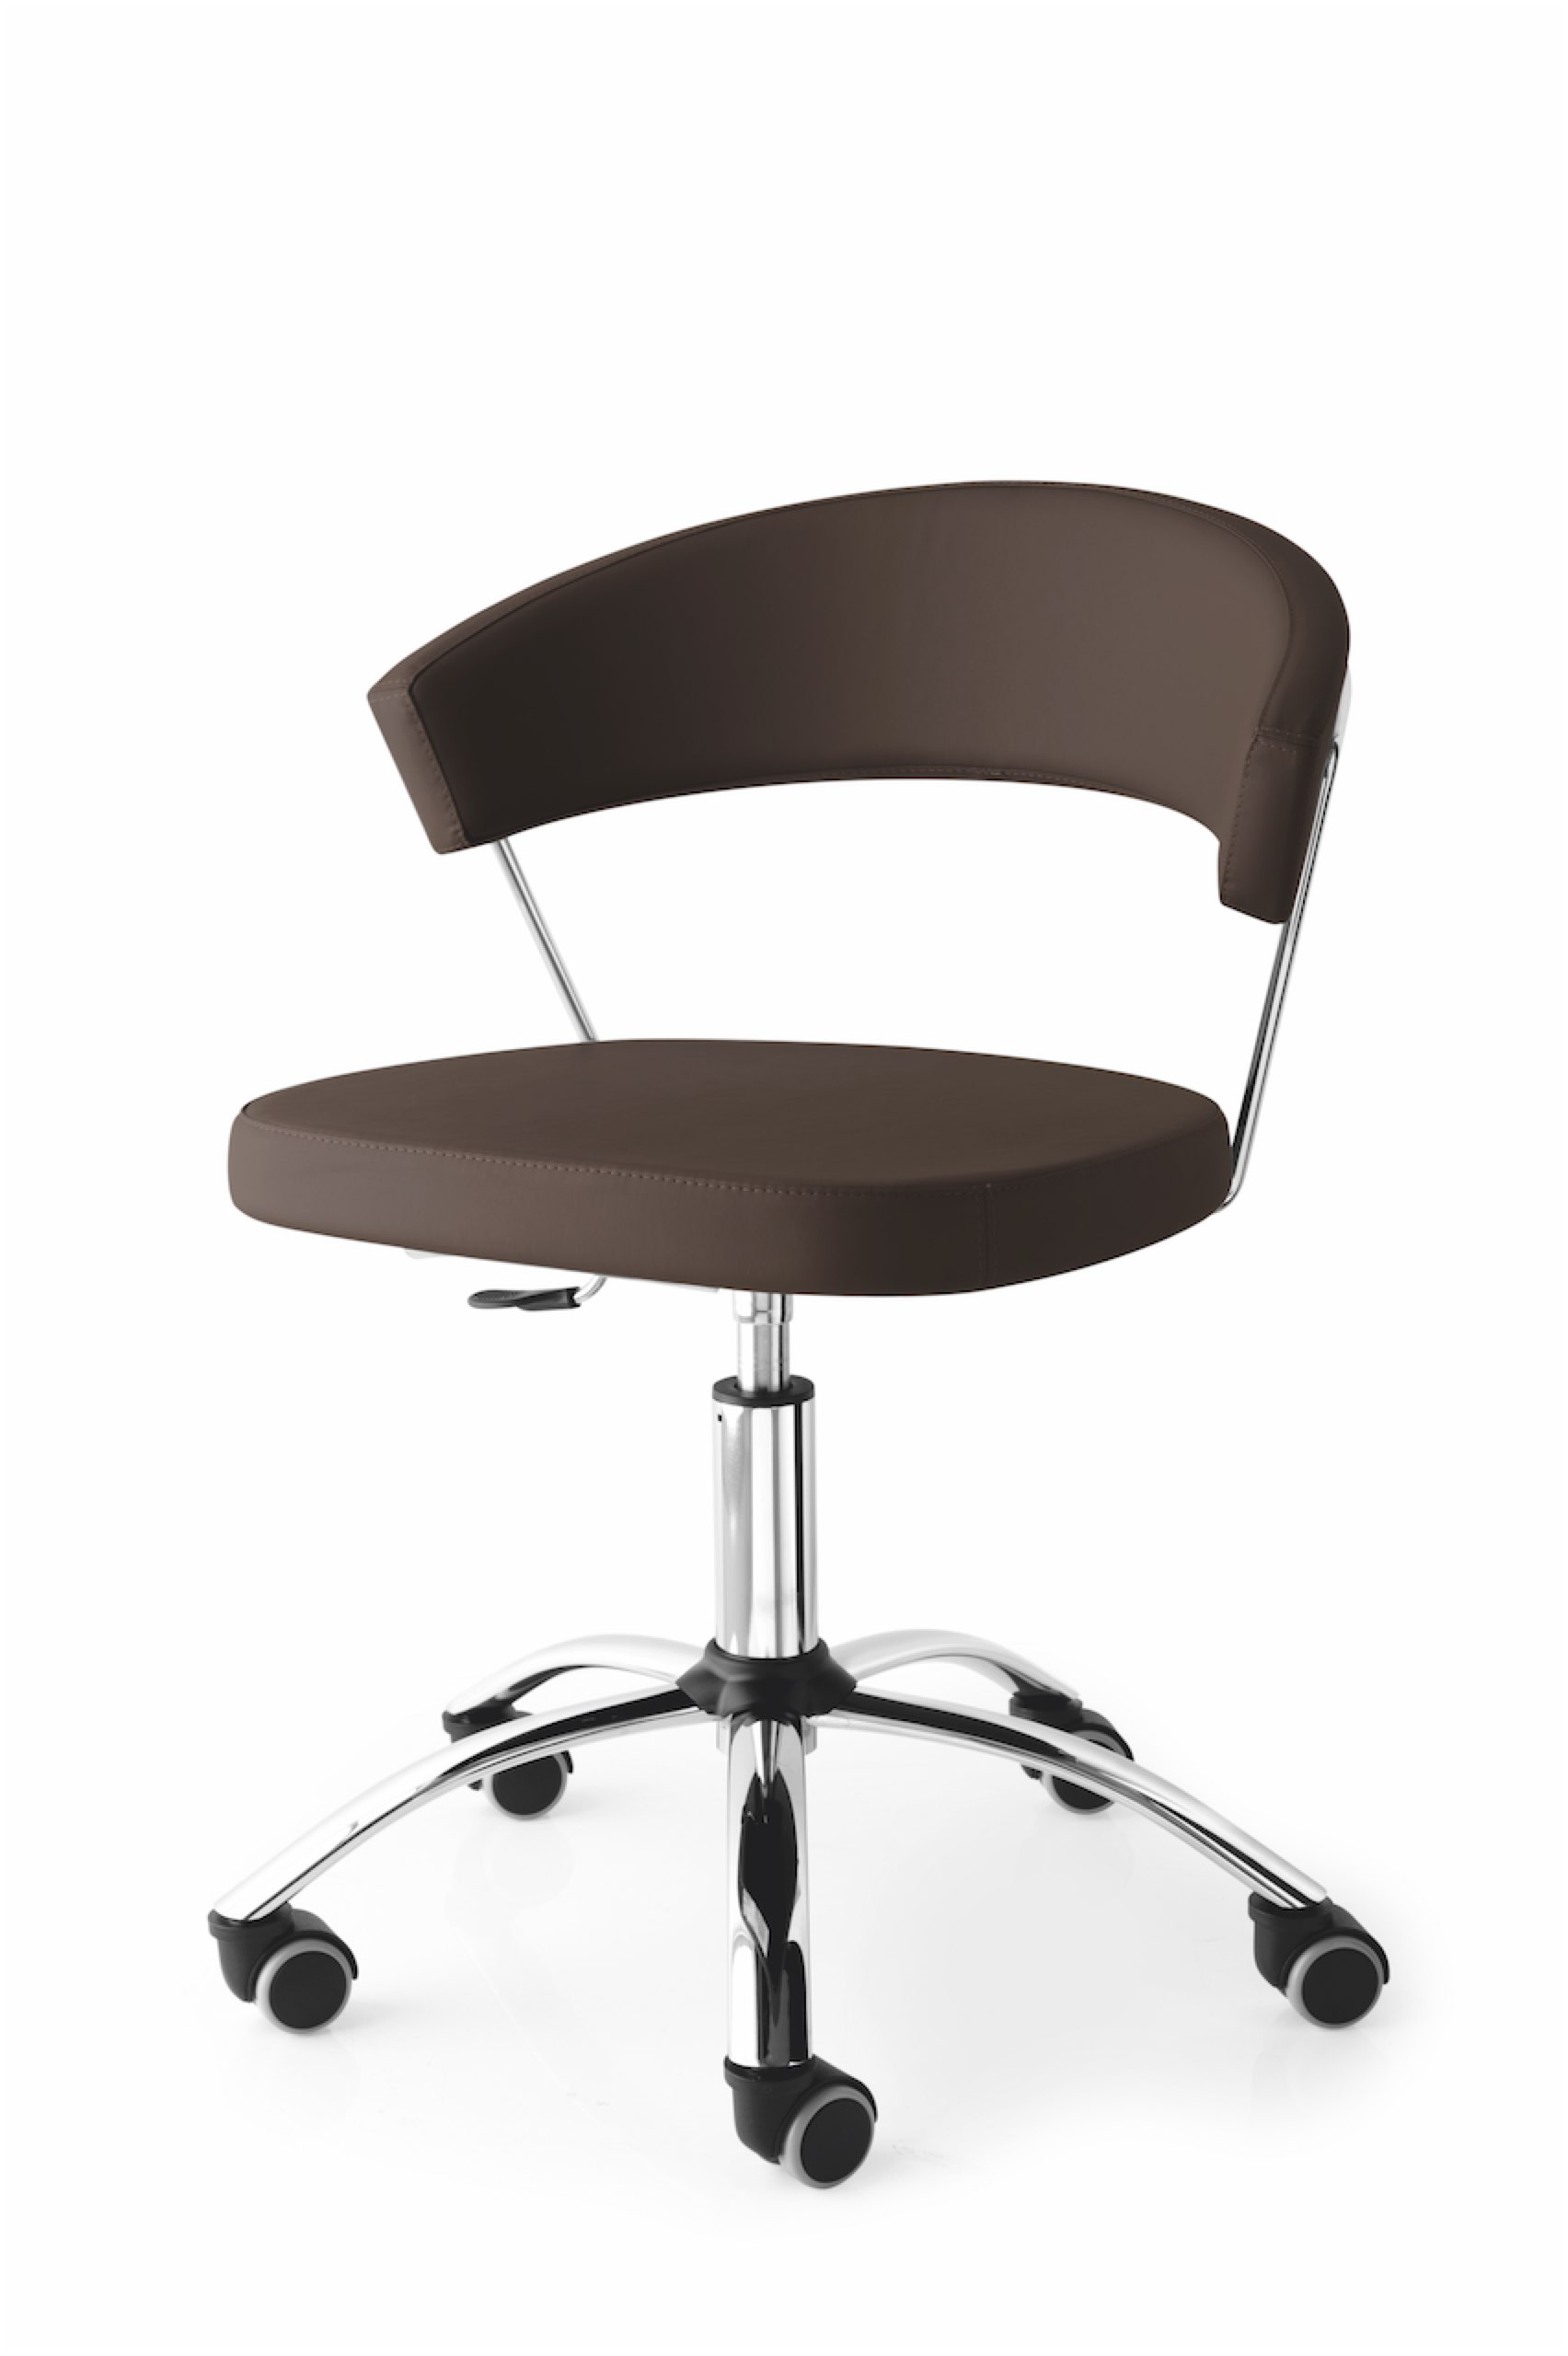 desk chair york wheelchair rental las vegas calligaris connubia office new 624 scuba in